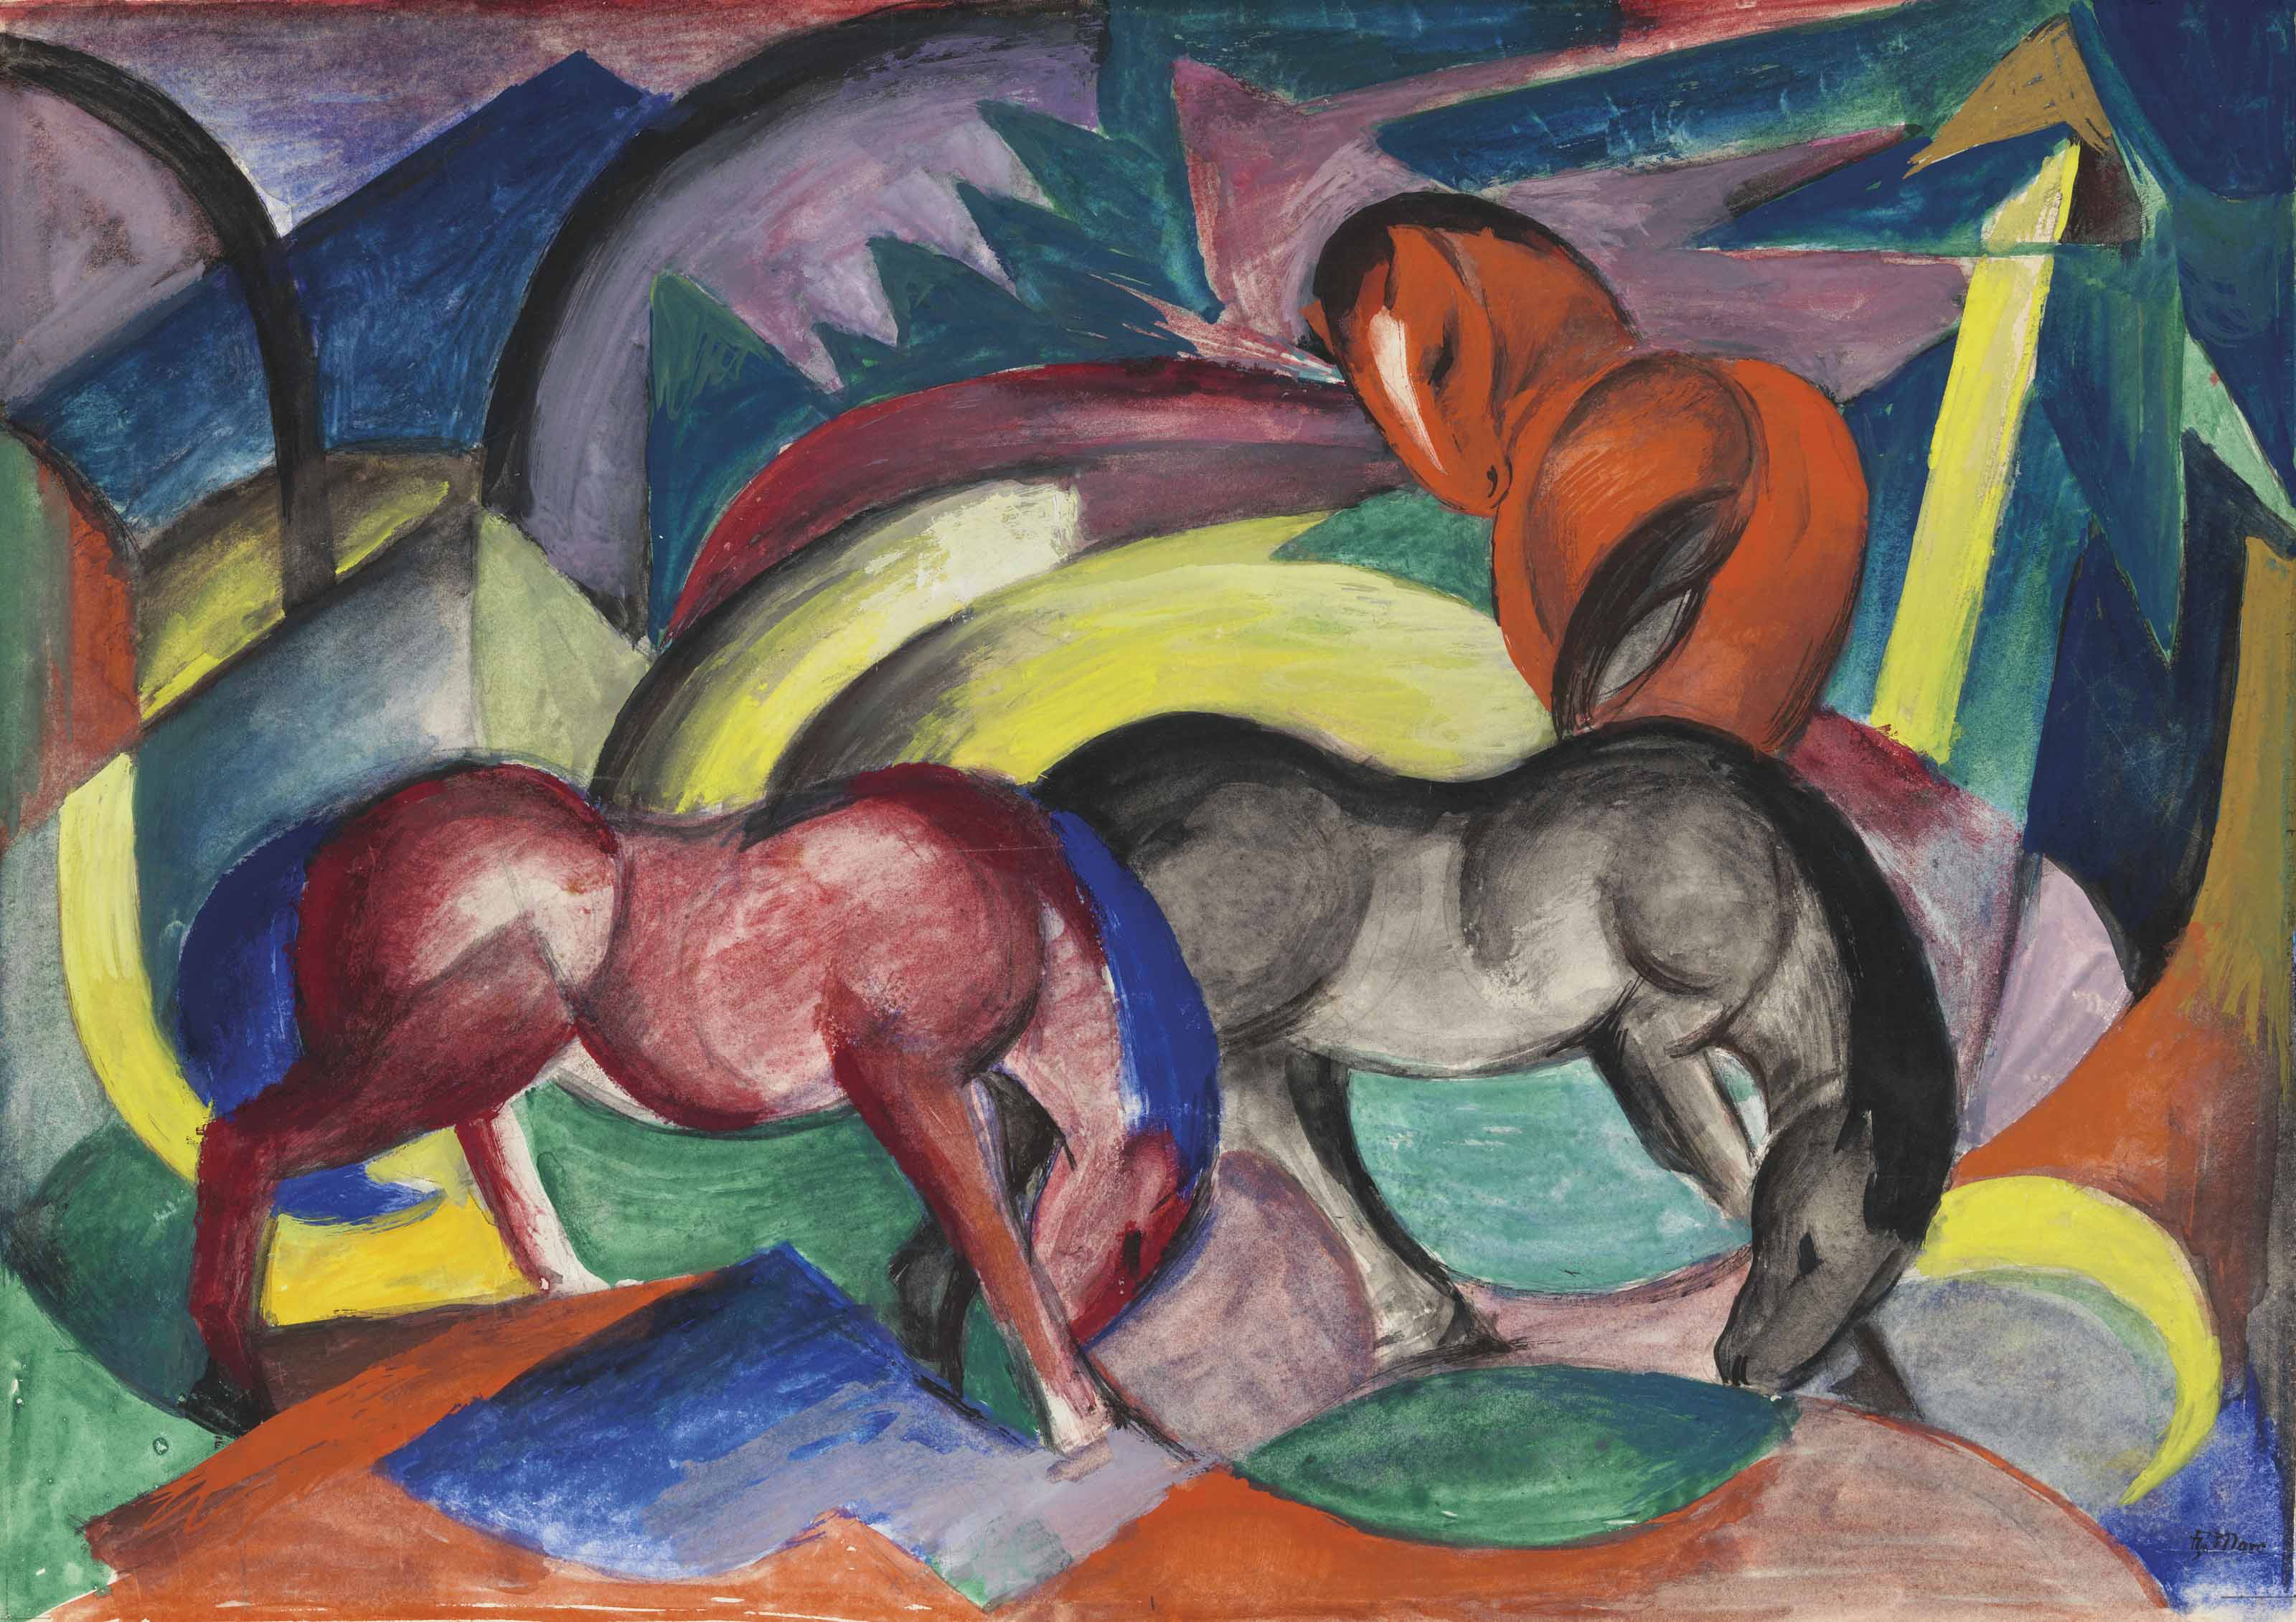 Franz Marc (1880-1916),Drei Pferde, 1912. 13¼ x 18¾  in (33.5 x 47.5  cm). Sold for £15,421,250 on 20 June 2018 at Christie's in London